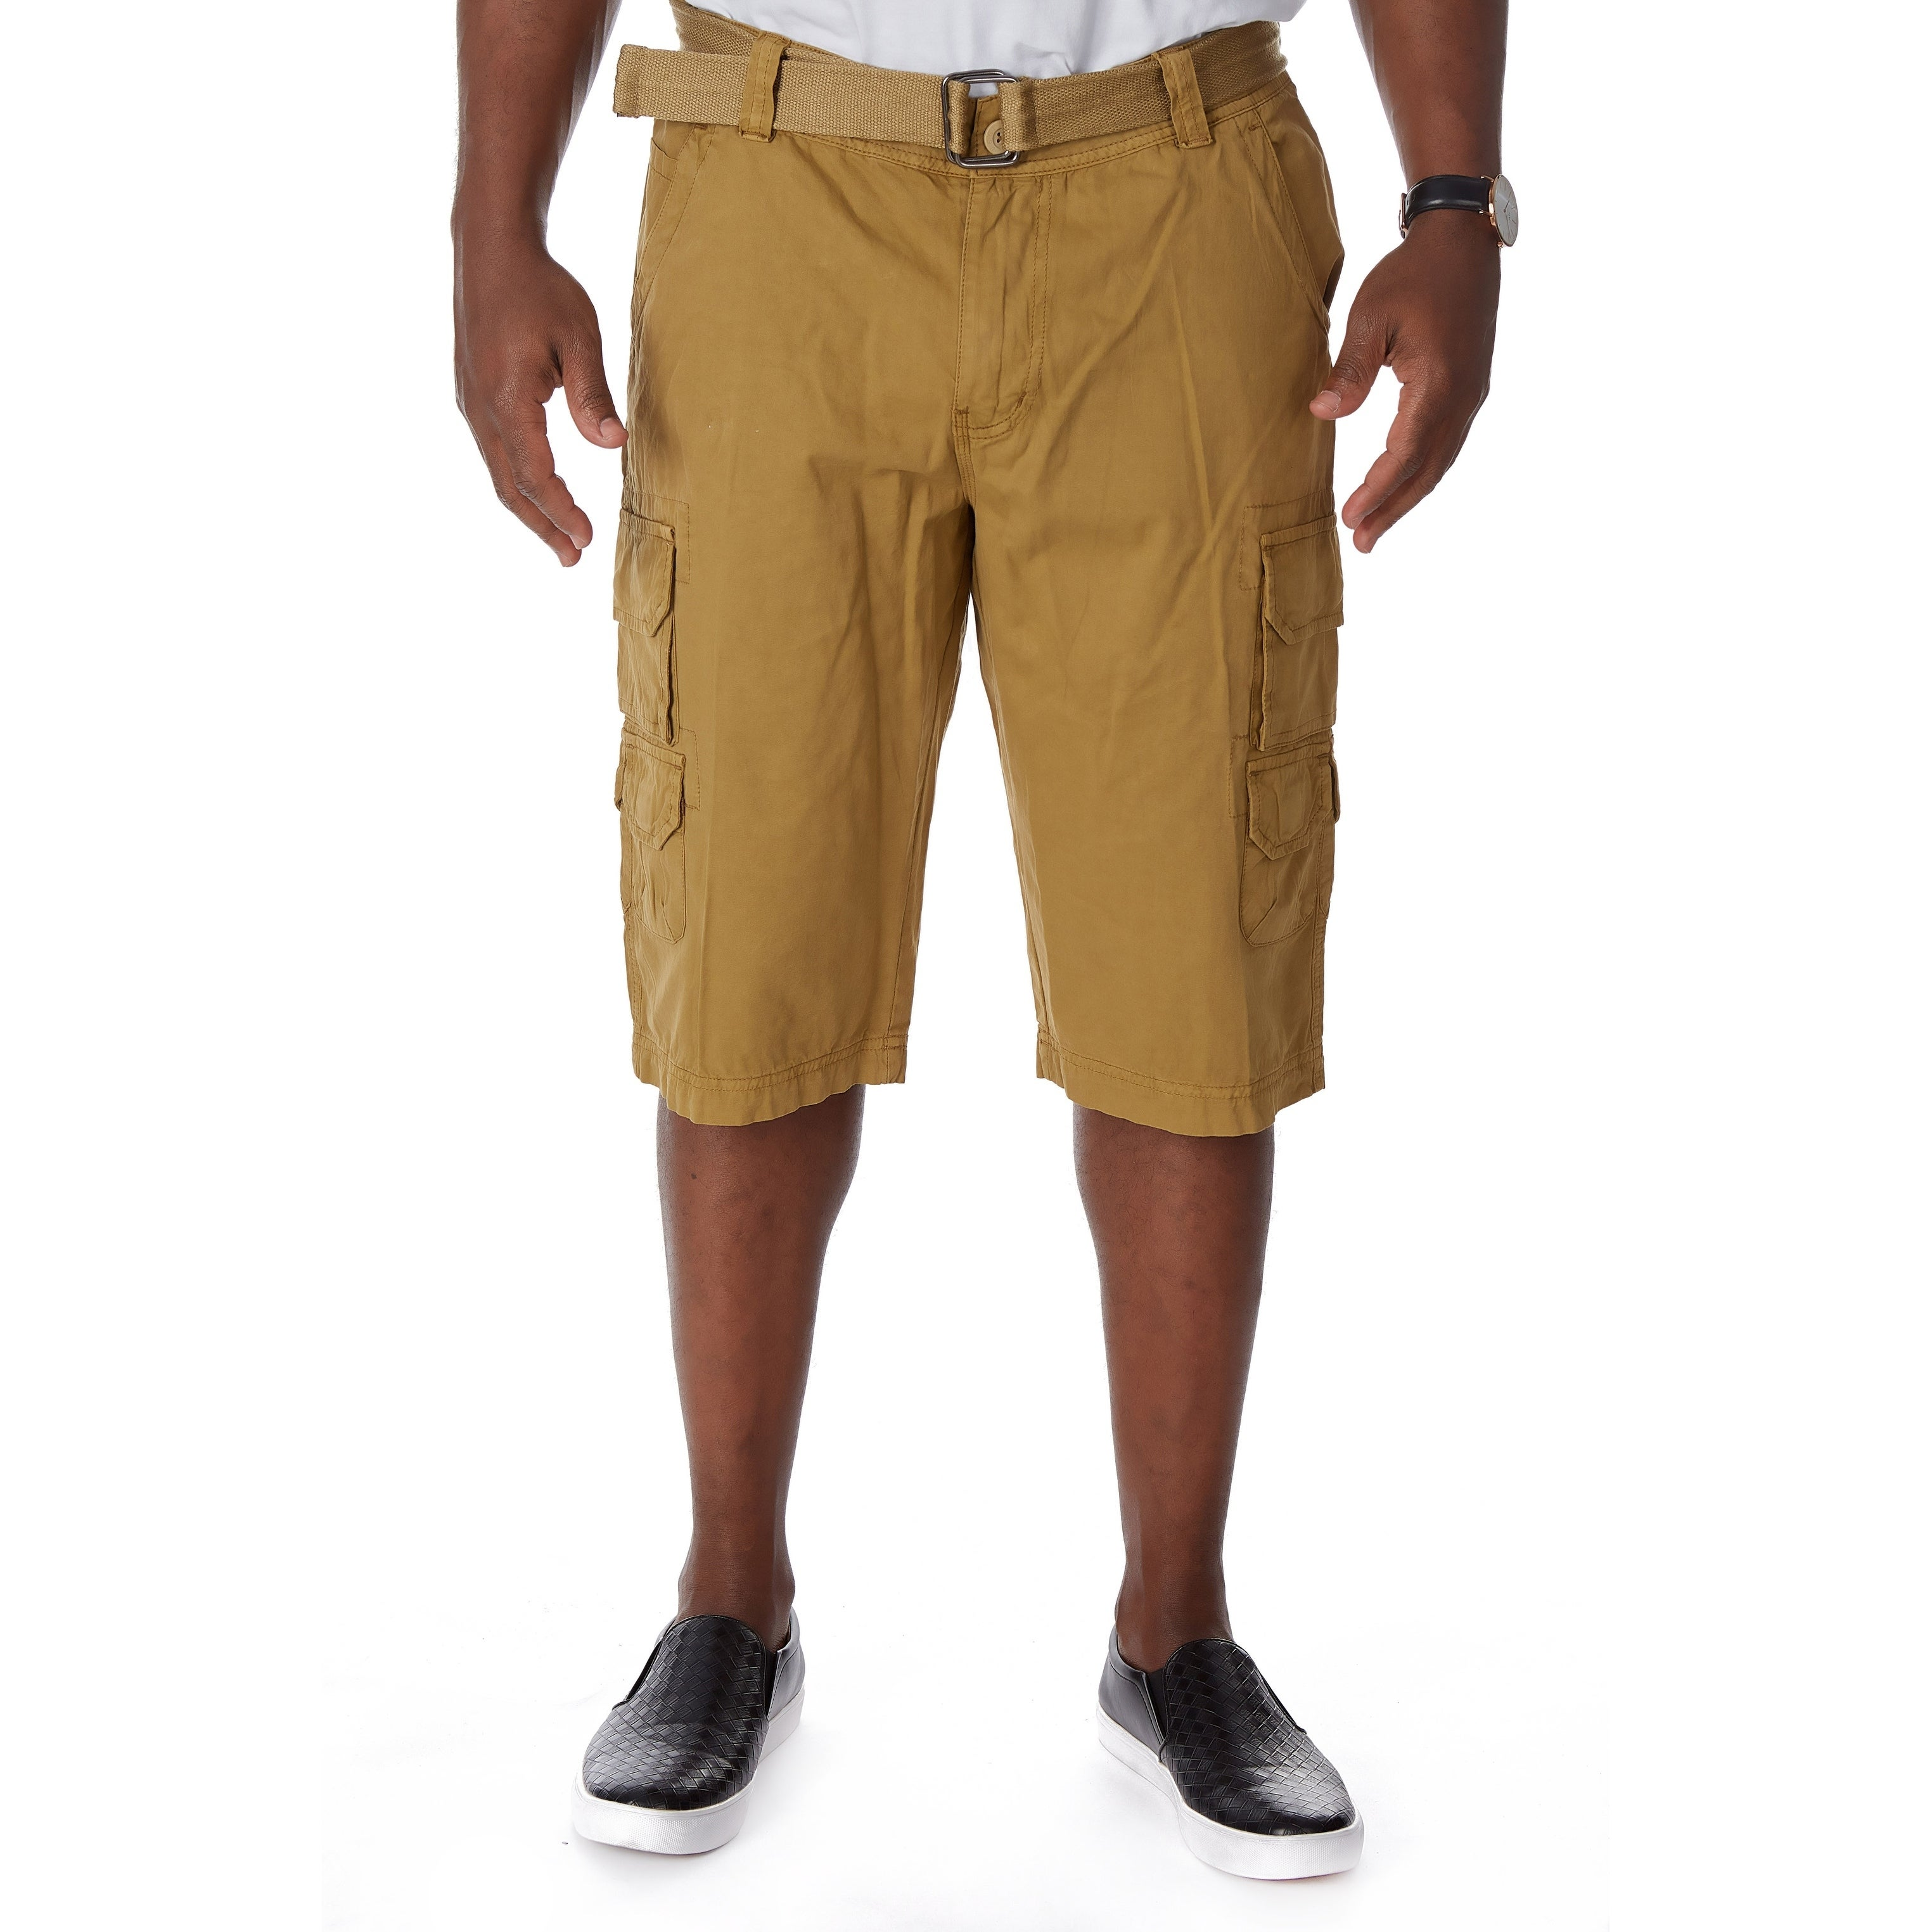 a35601436e Shop Raw X Men's Belted Stacked Cargo Shorts with Hidden Snaps - Free  Shipping On Orders Over $45 - Overstock - 27479241